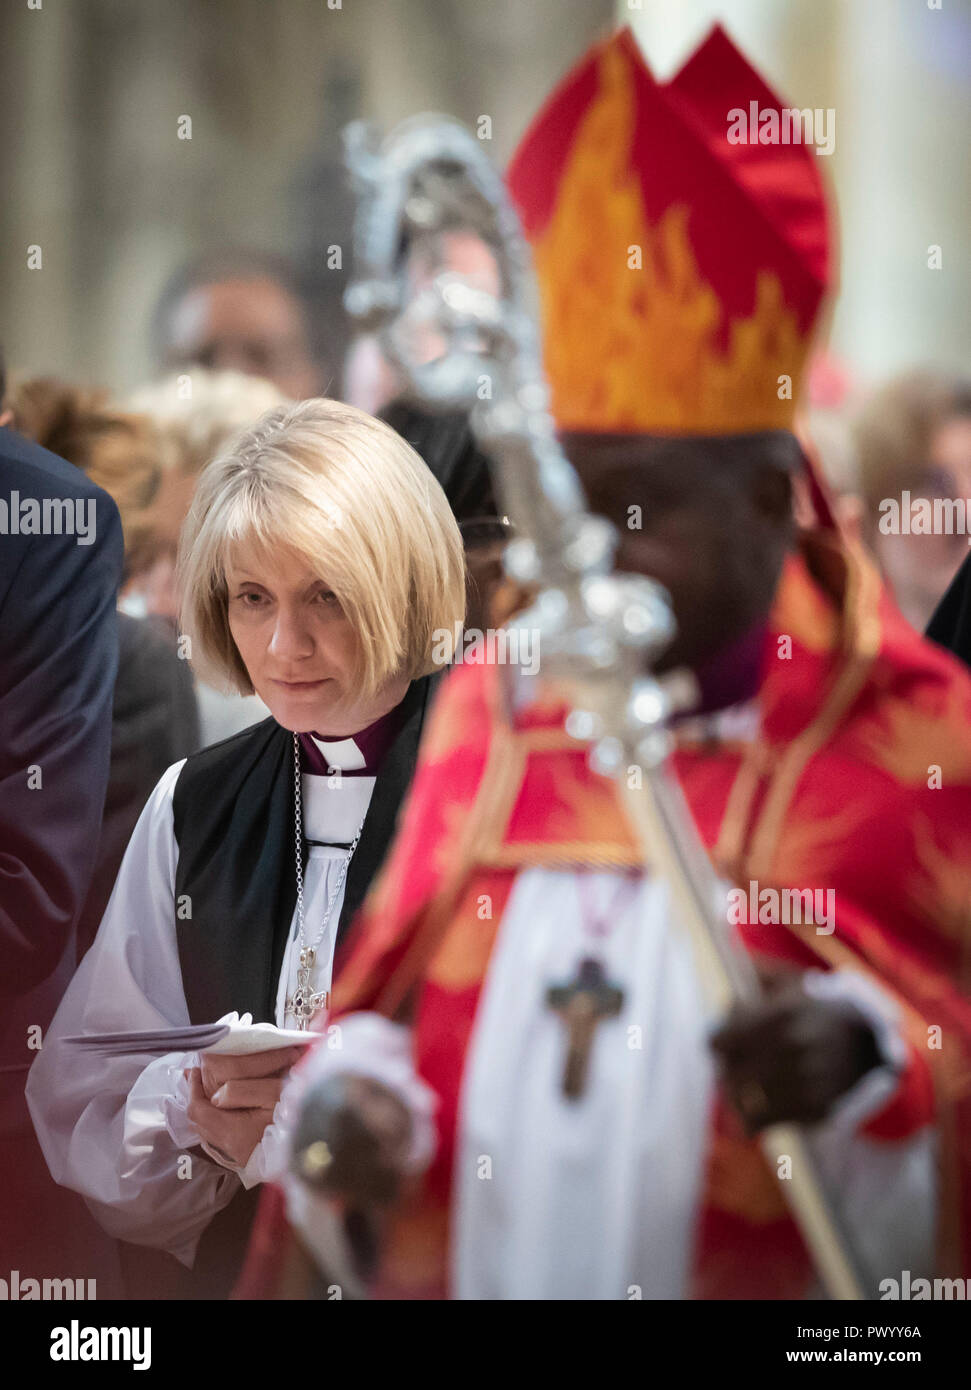 The Venerable Beverley Anne Mason is consecrated as the next Suffragan Bishop of Warrington in the Diocese of Liverpool at York Minster. - Stock Image